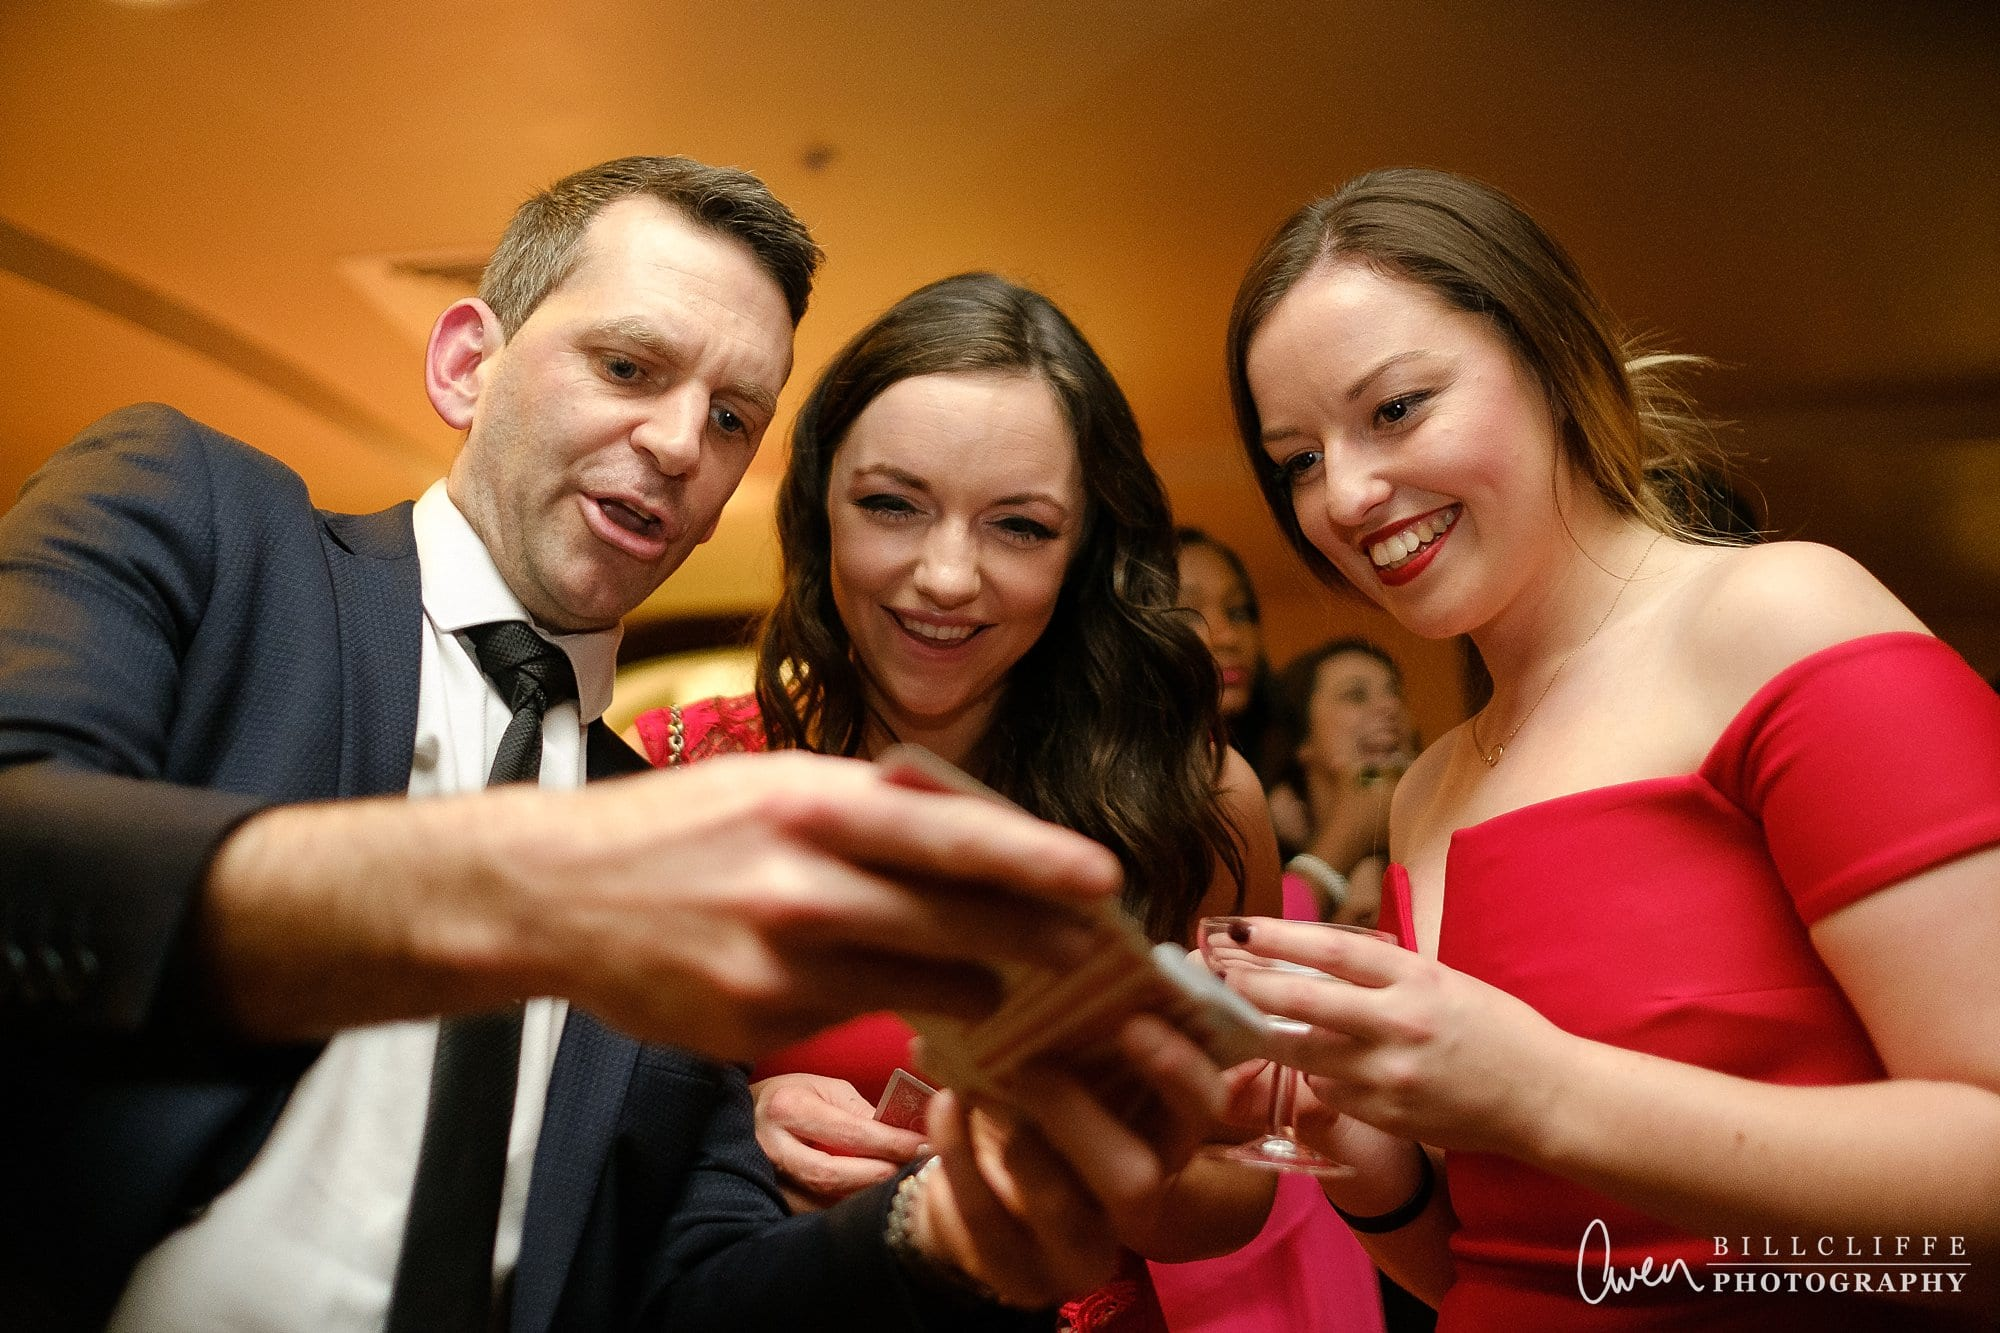 london wedding photographer magician lee smith 020 - Event Entertainer Spotlight: Lee Smith, Walkabout Magician